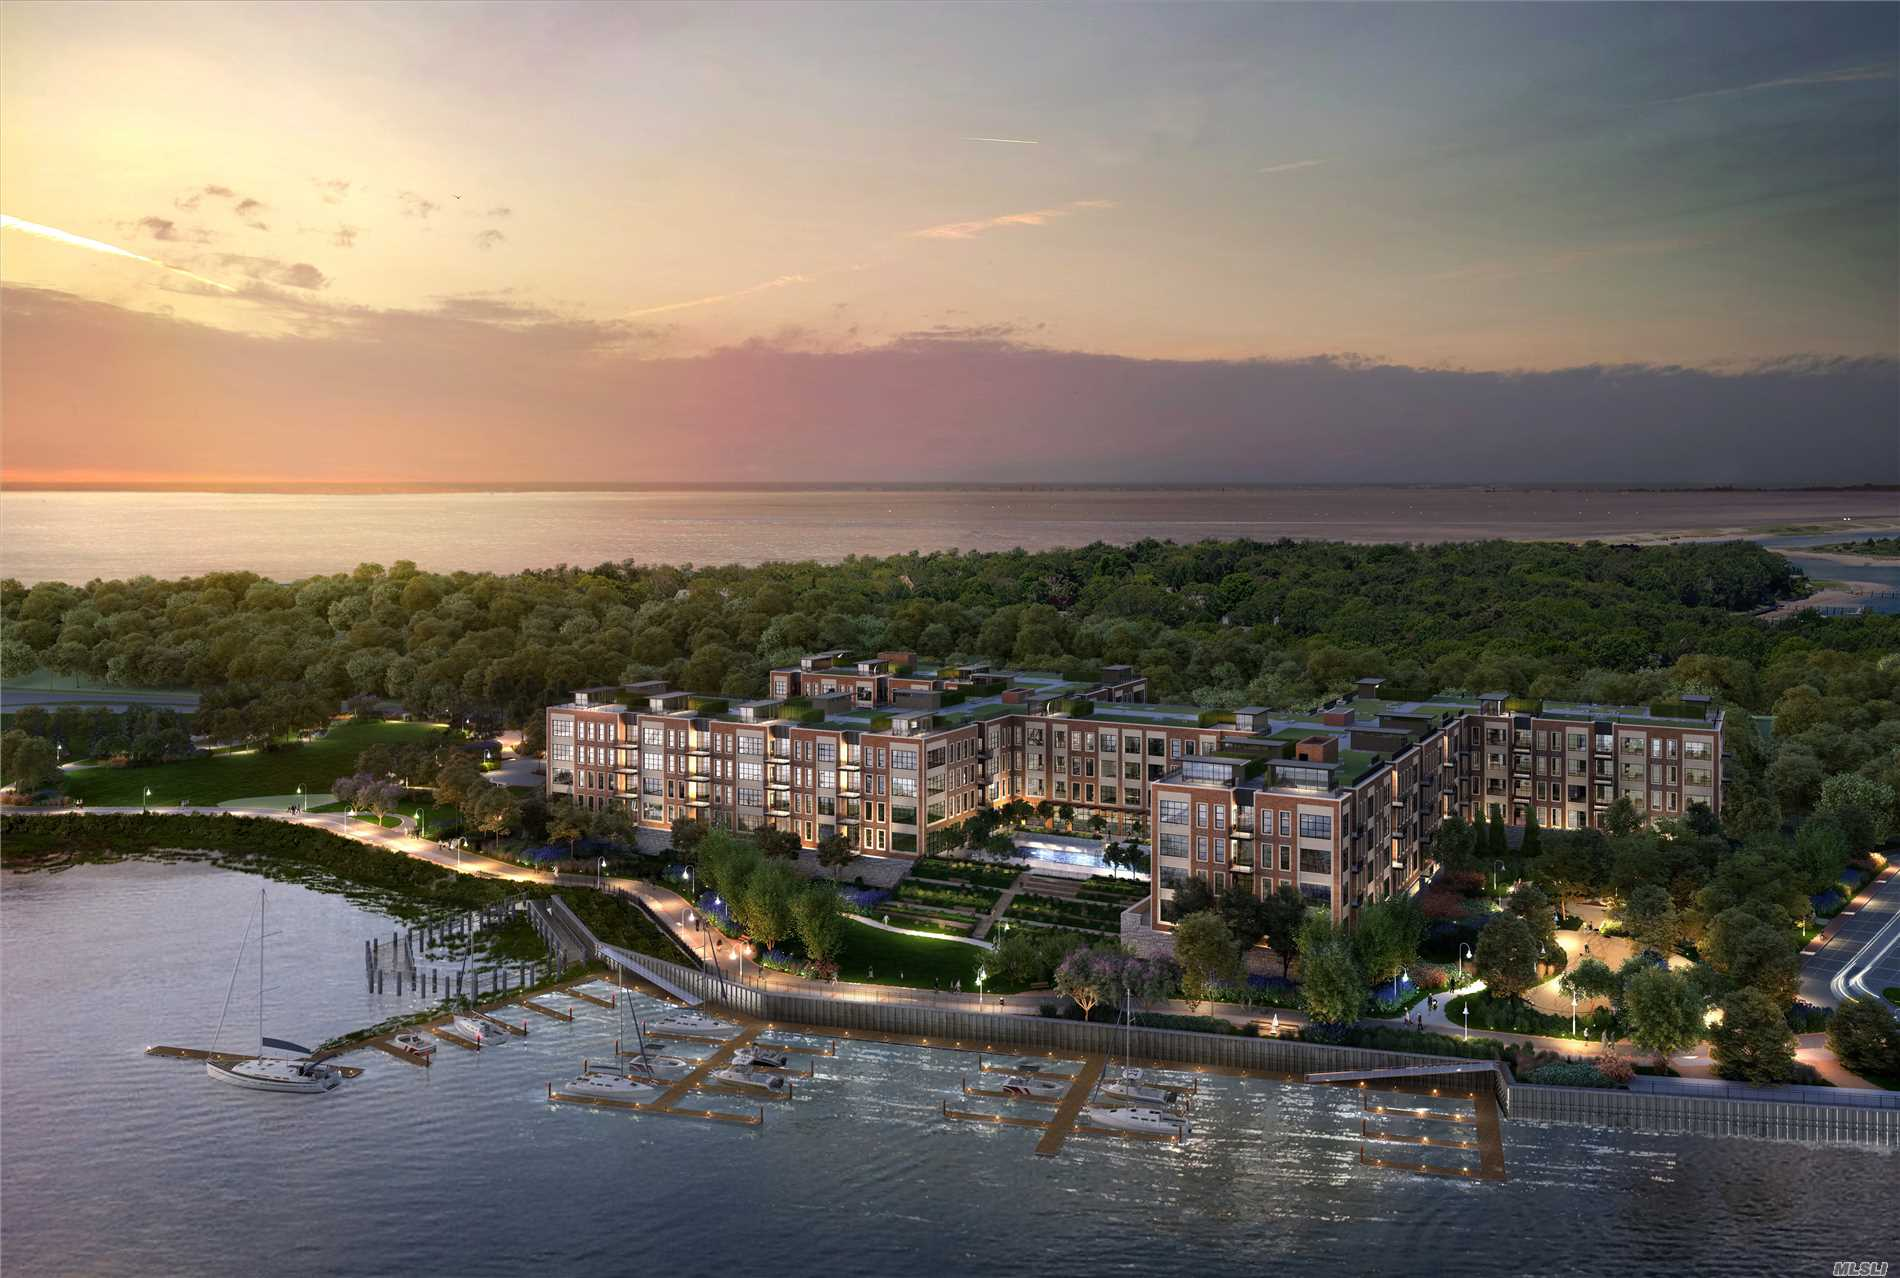 Property for sale at 100 Garvies Point Road # 1208, Glen Cove NY 11542, Glen Cove,  New York 11542